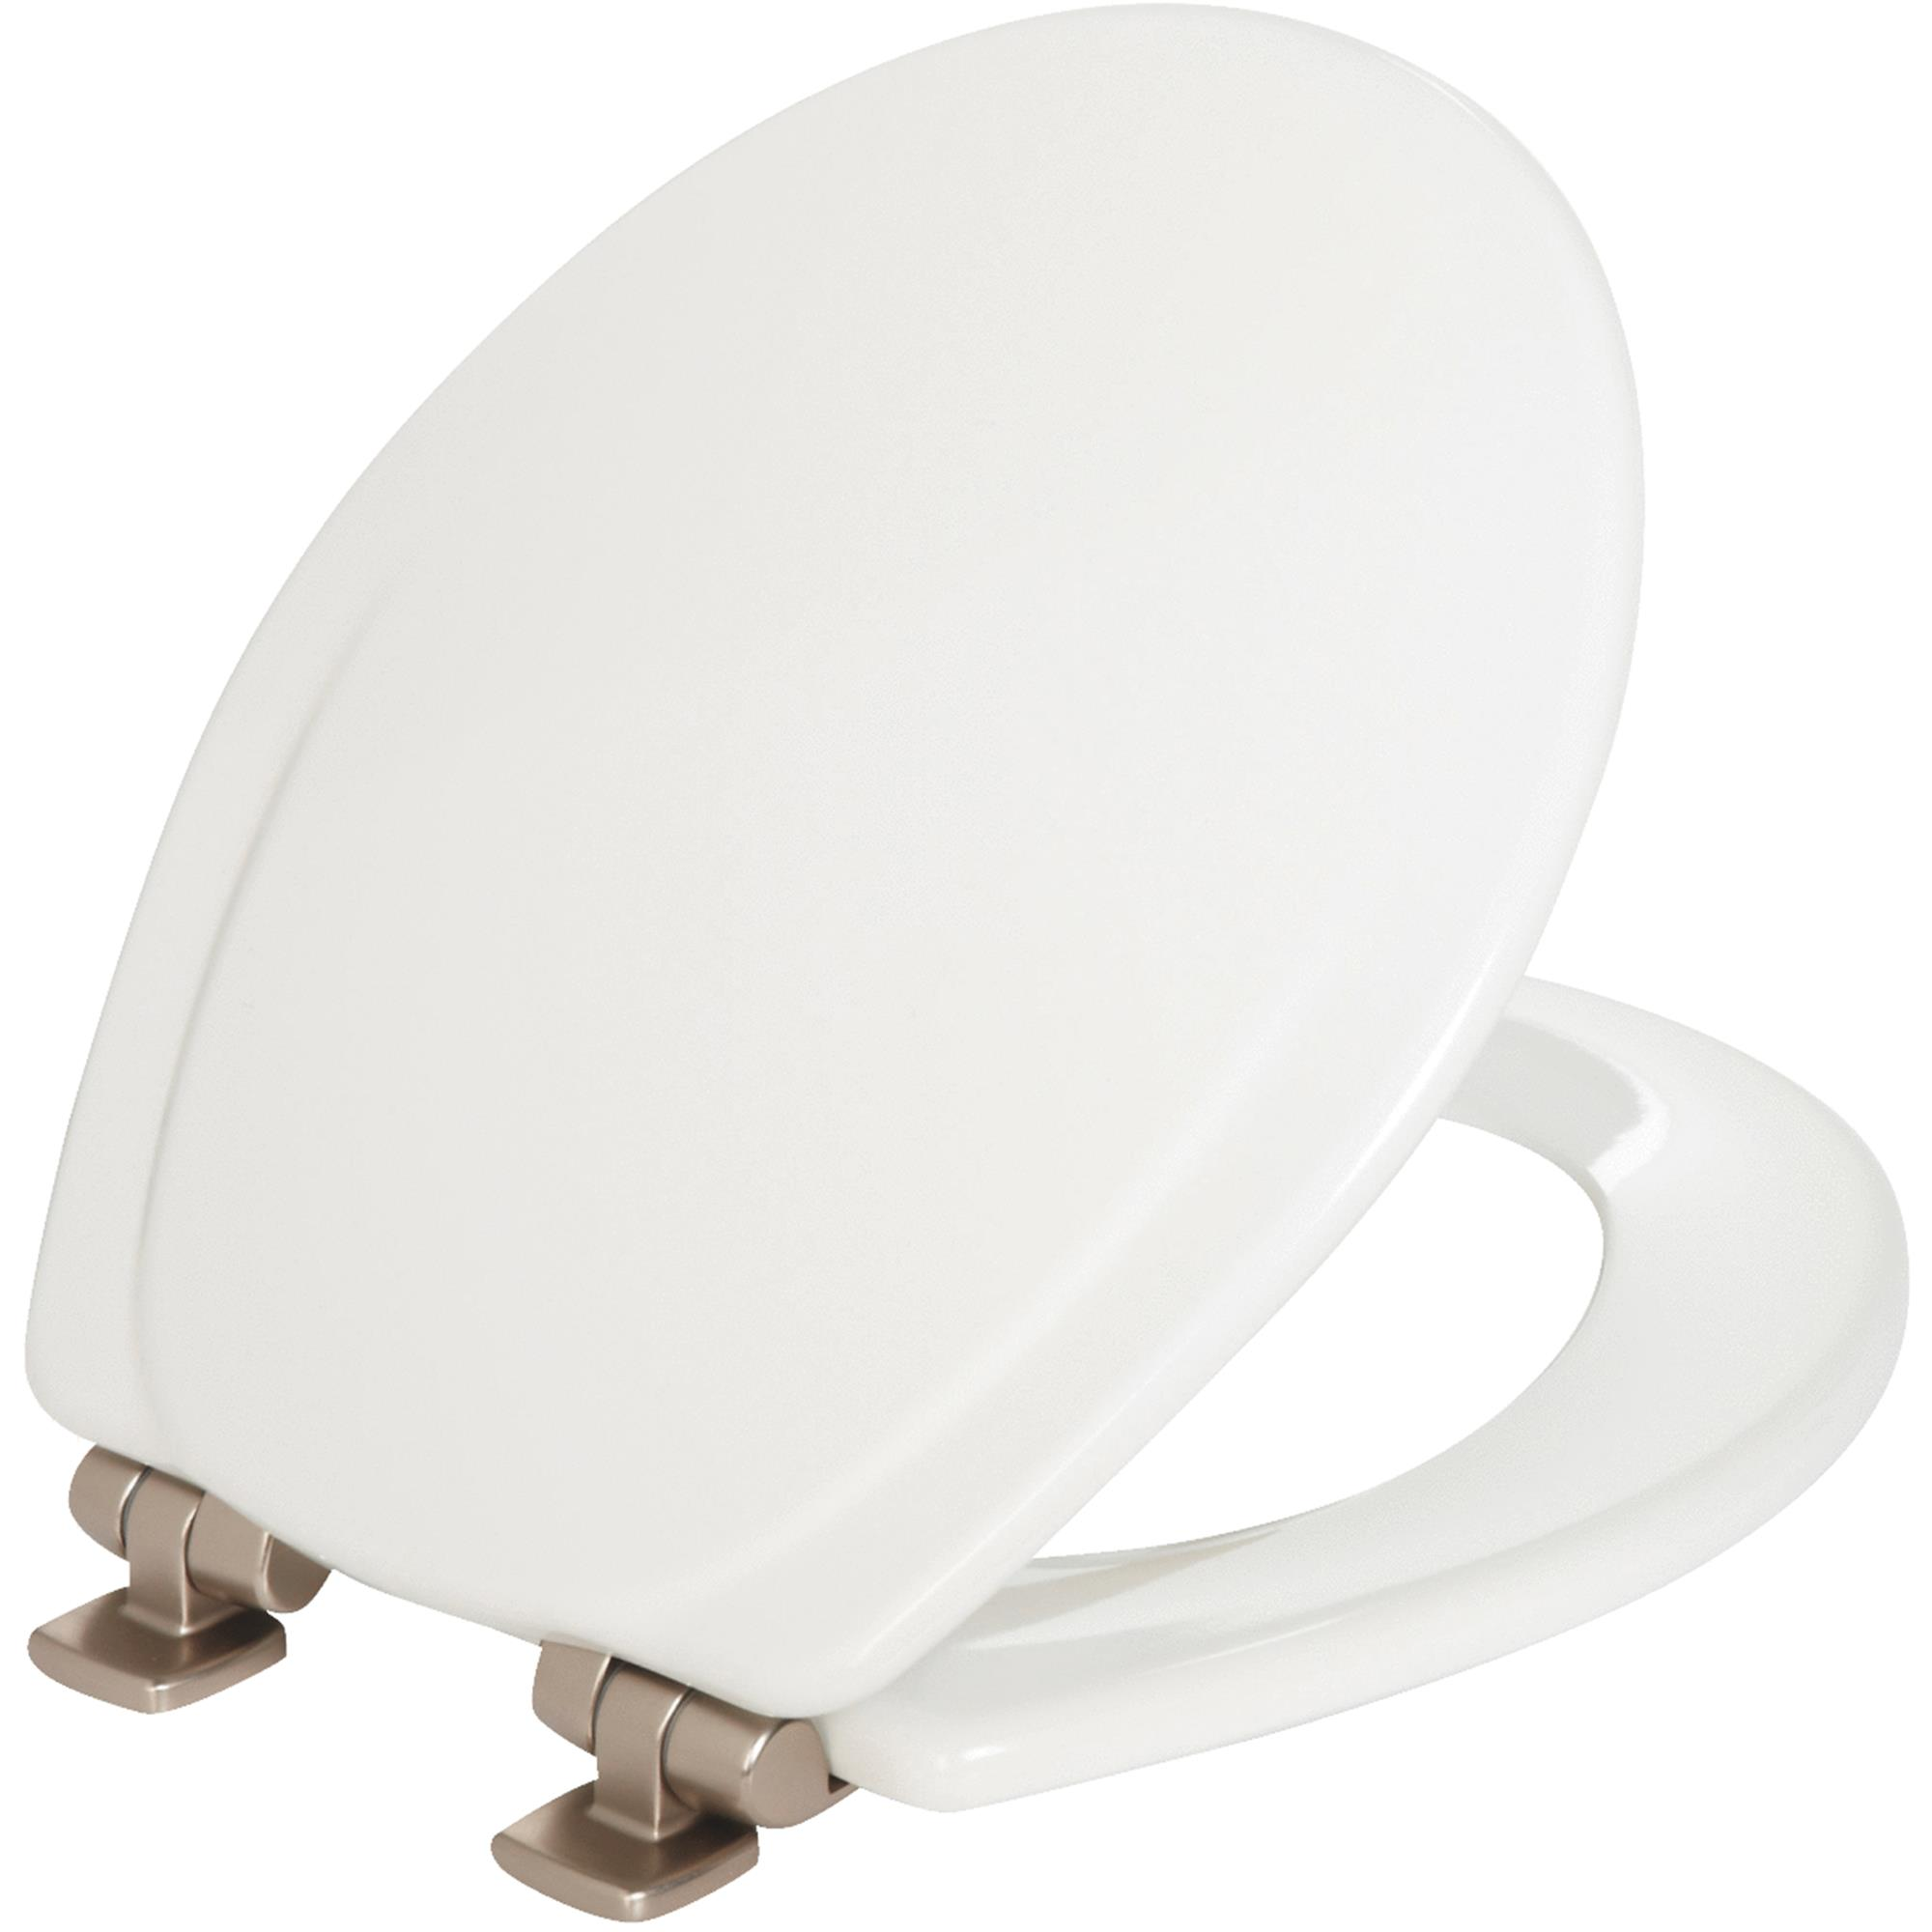 Mayfair 30NISLB Wood Round Slow-Close Toilet Seat, White by Mayfair